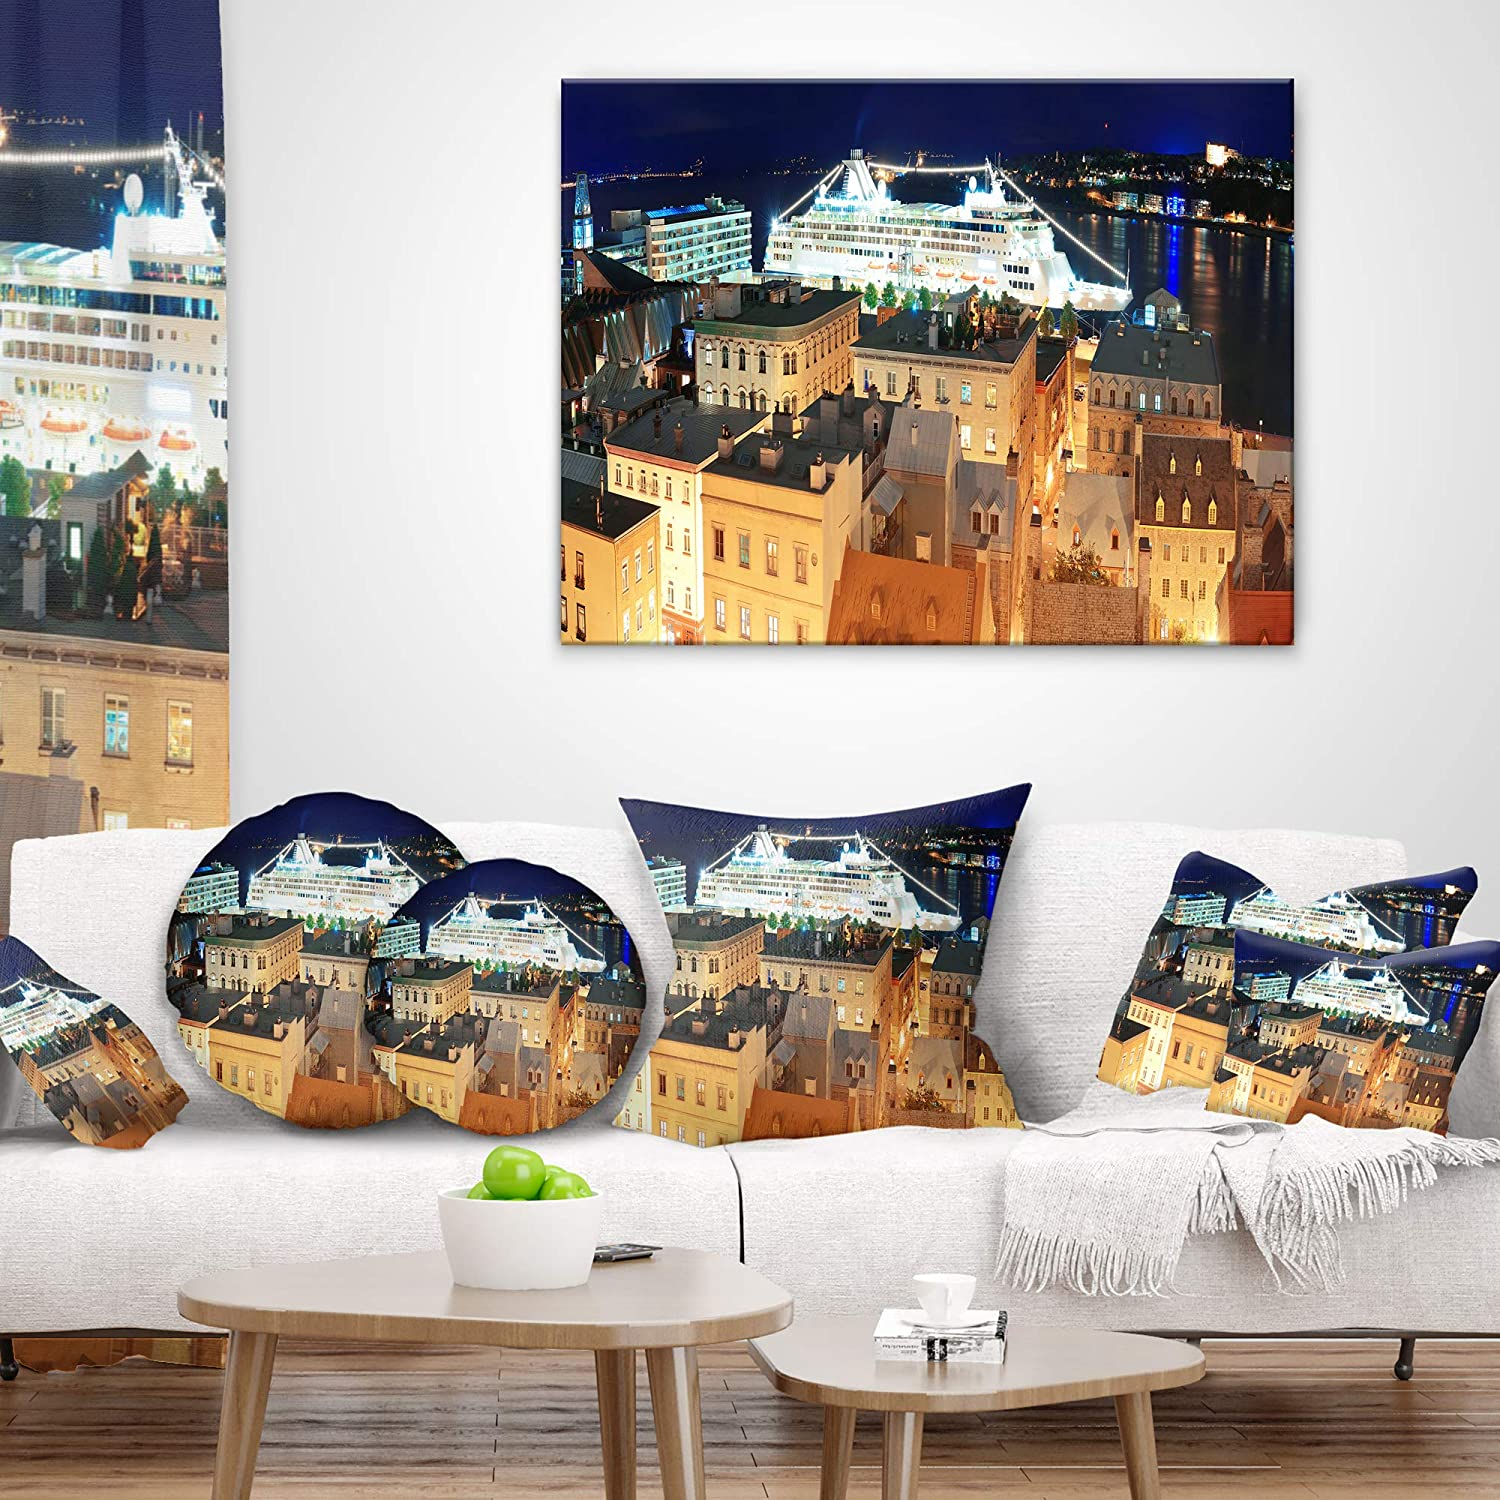 in x 20 in Insert Printed On Both Side Sofa Throw Pillow 12 in Designart CU7340-12-20 Quebec City Cityscape Photo Lumbar Cushion Cover for Living Room